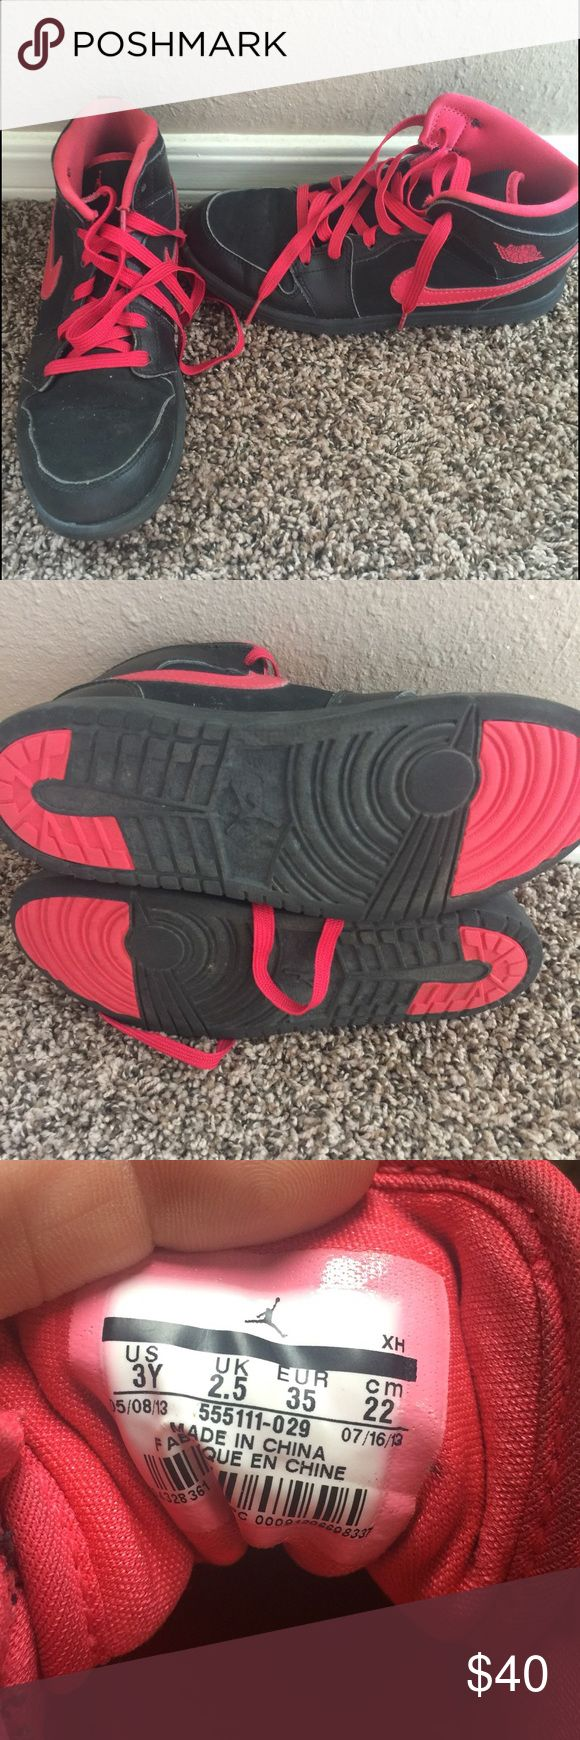 Boy's Air Jordan Shoes These boy's Air Jordan's have very little use. Great condition. Only flaw is the tip of one of the shoe strings is bent slightly. Size 3 Nike Shoes Sneakers